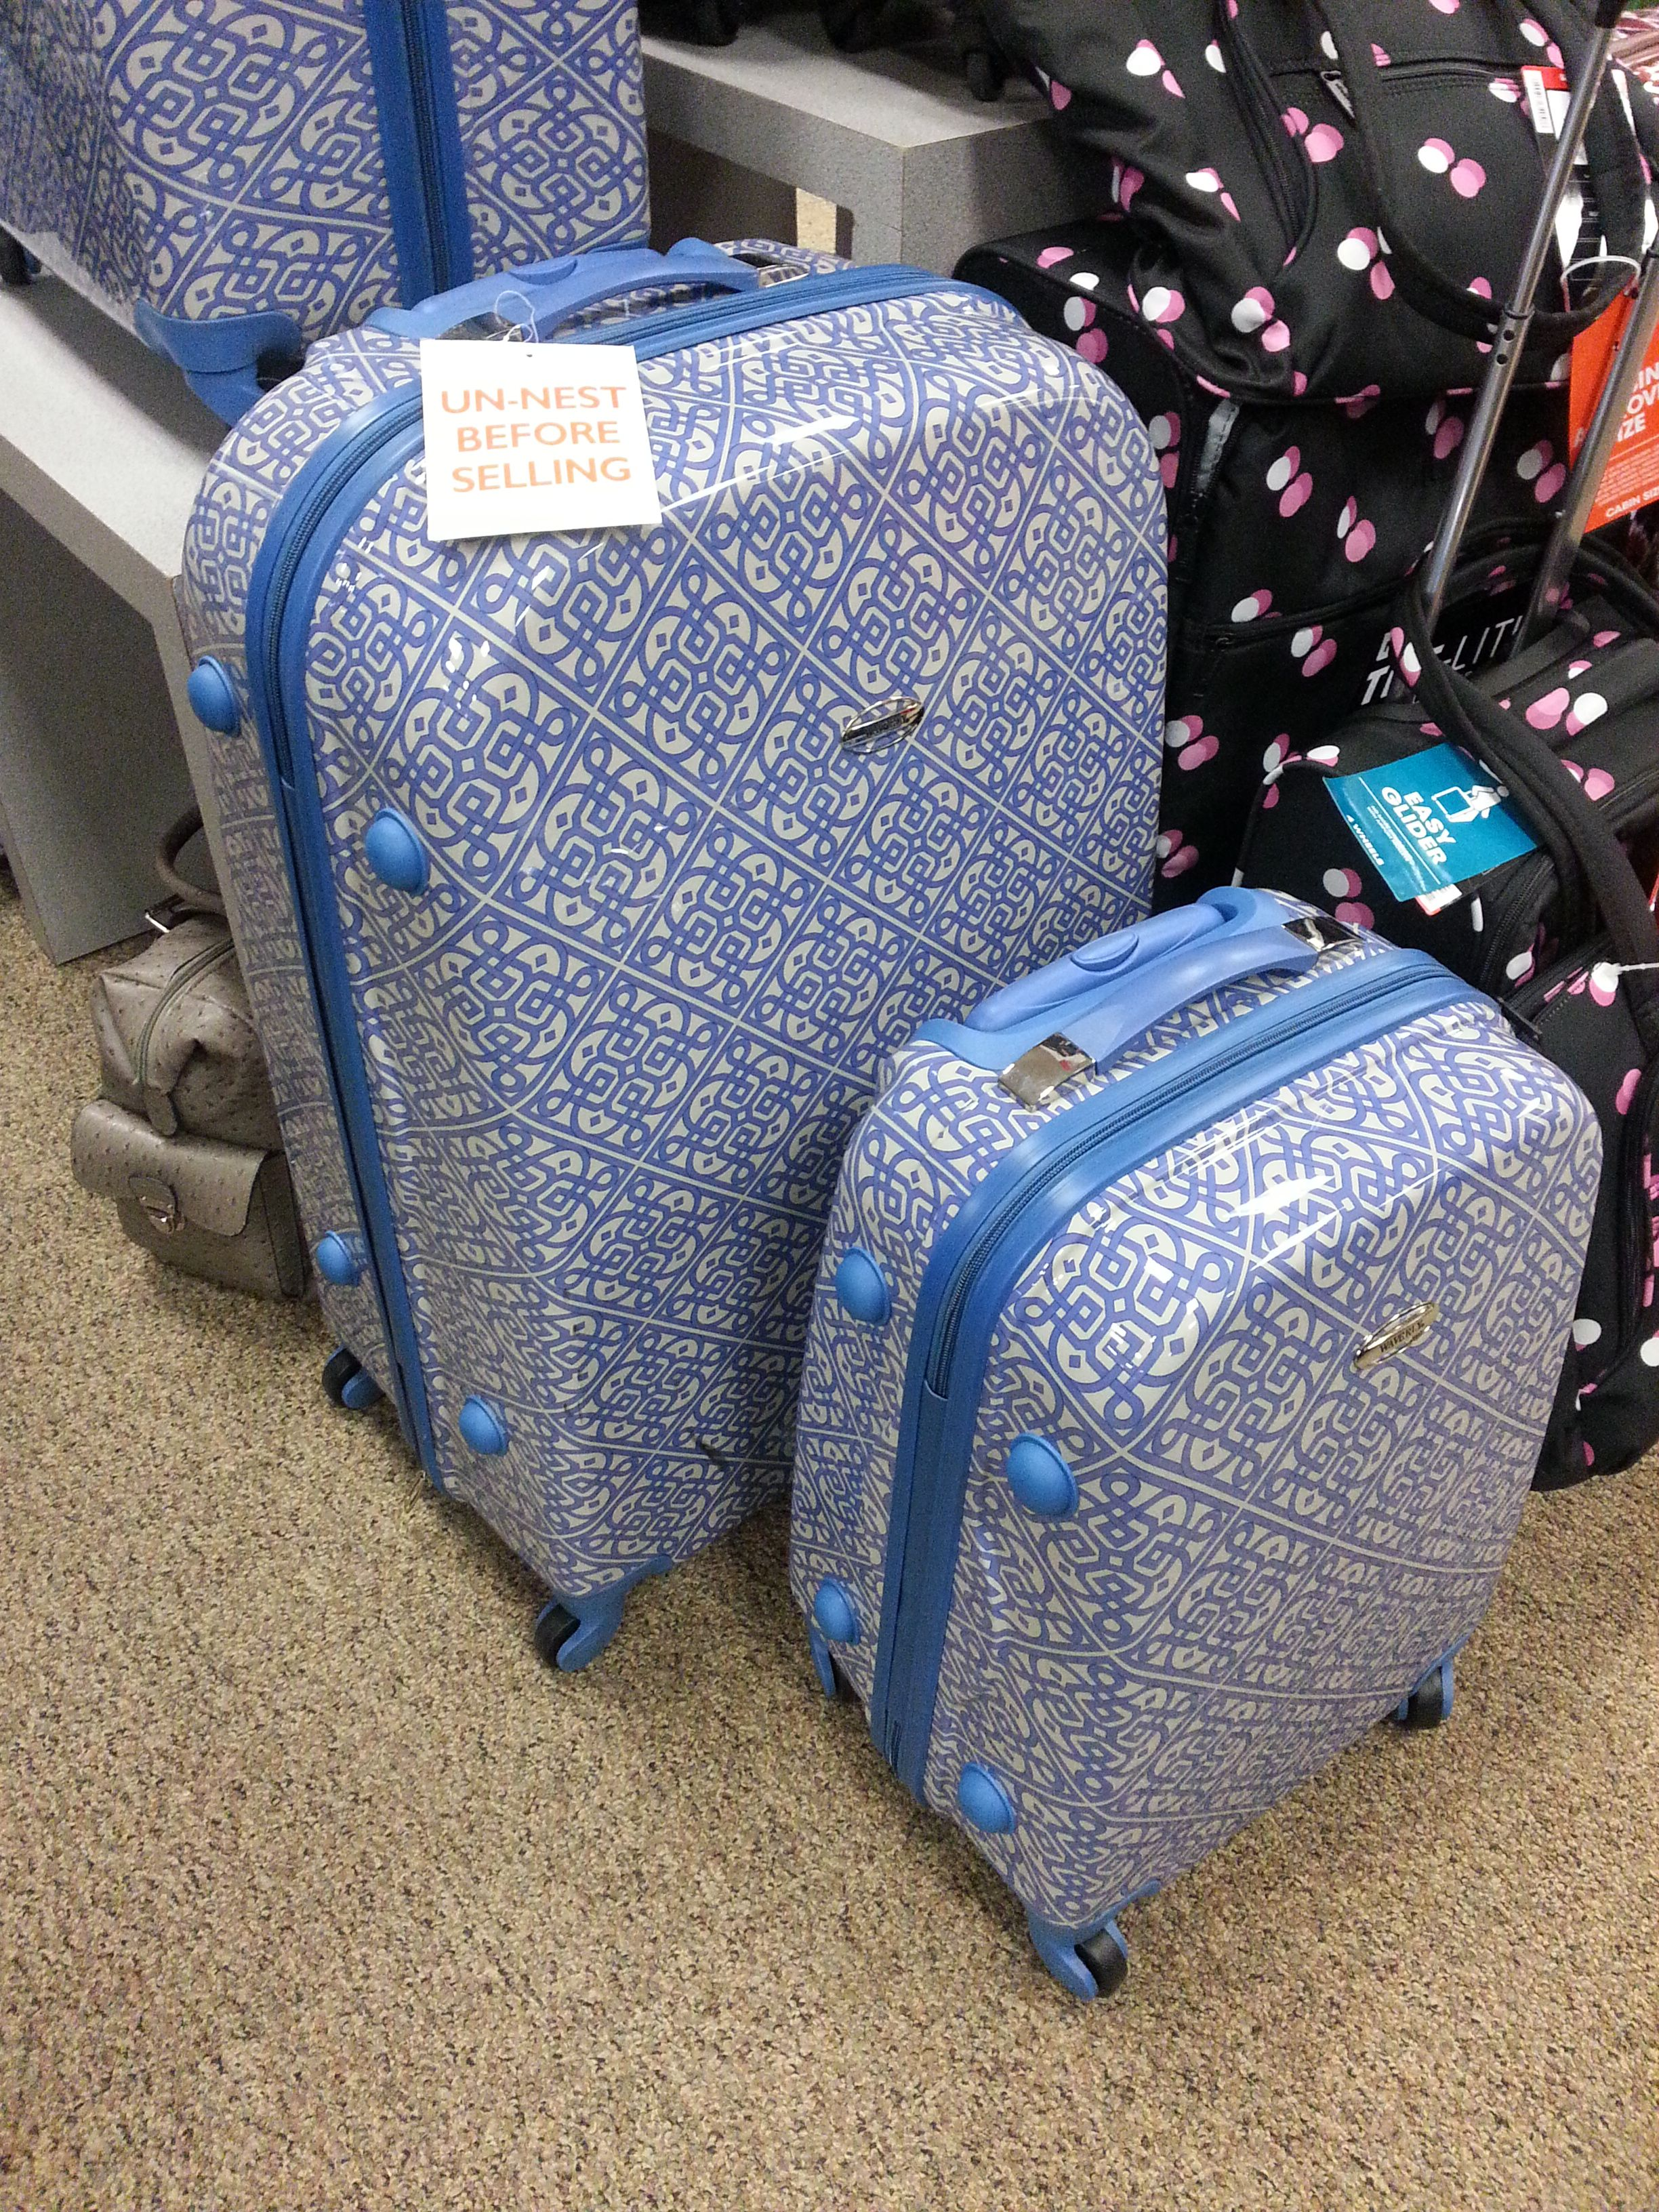 I saw this lugggage at Steinmart and really like it!